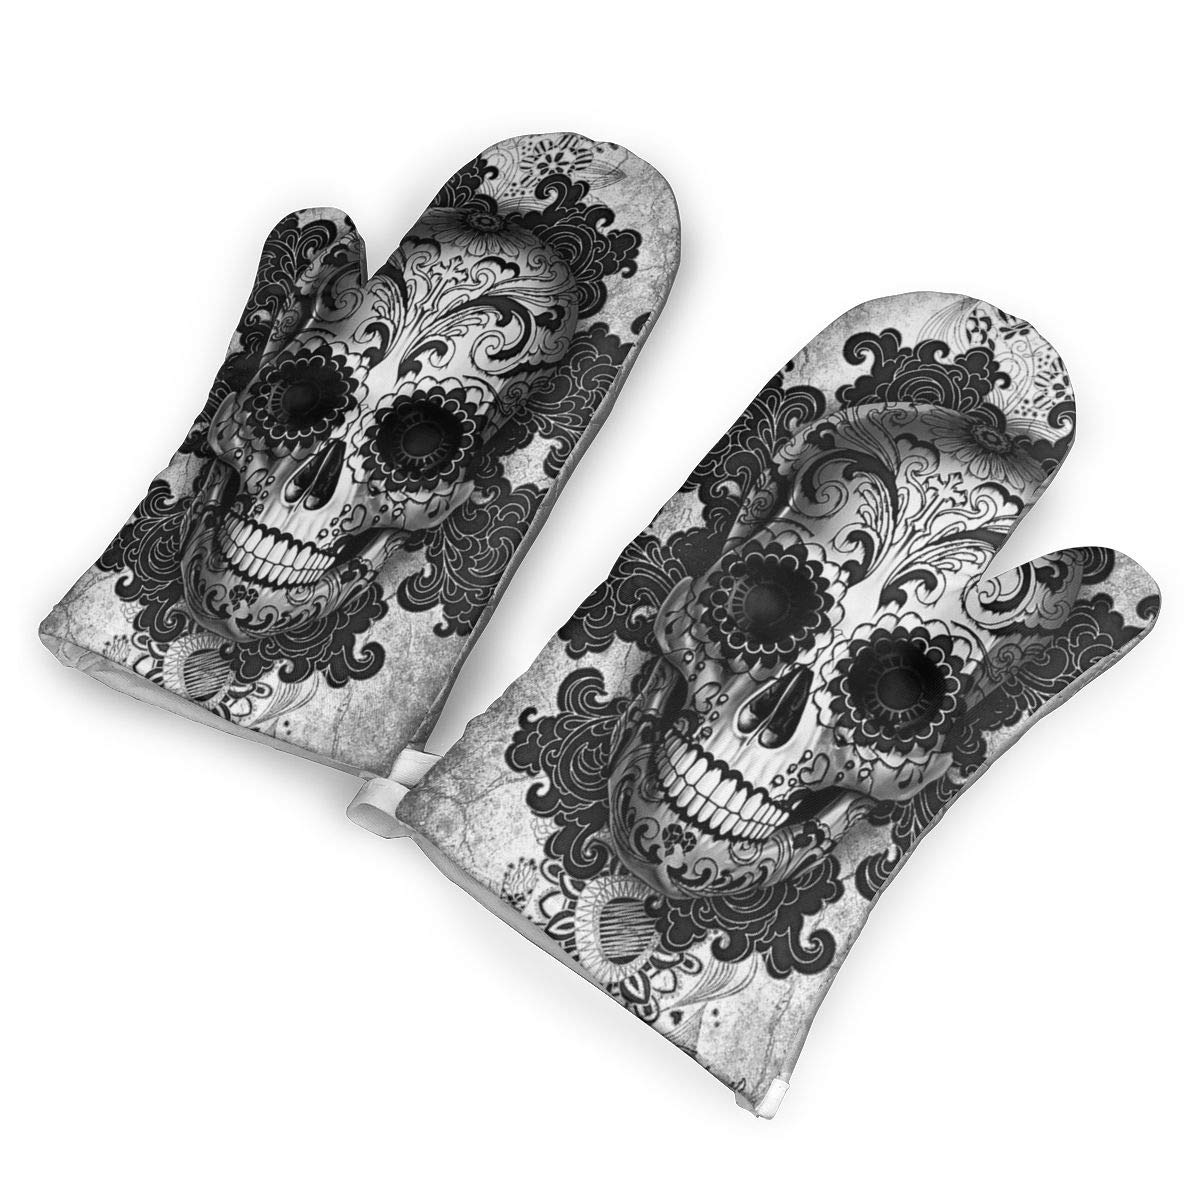 TMVFPYR Oven Mitts,Sugar Skull Black Non-Slip Silicone Oven Mitts, Extra Long Kitchen Mitts, Heat Resistant to 500Fahrenheit Degrees Kitchen Oven Gloves